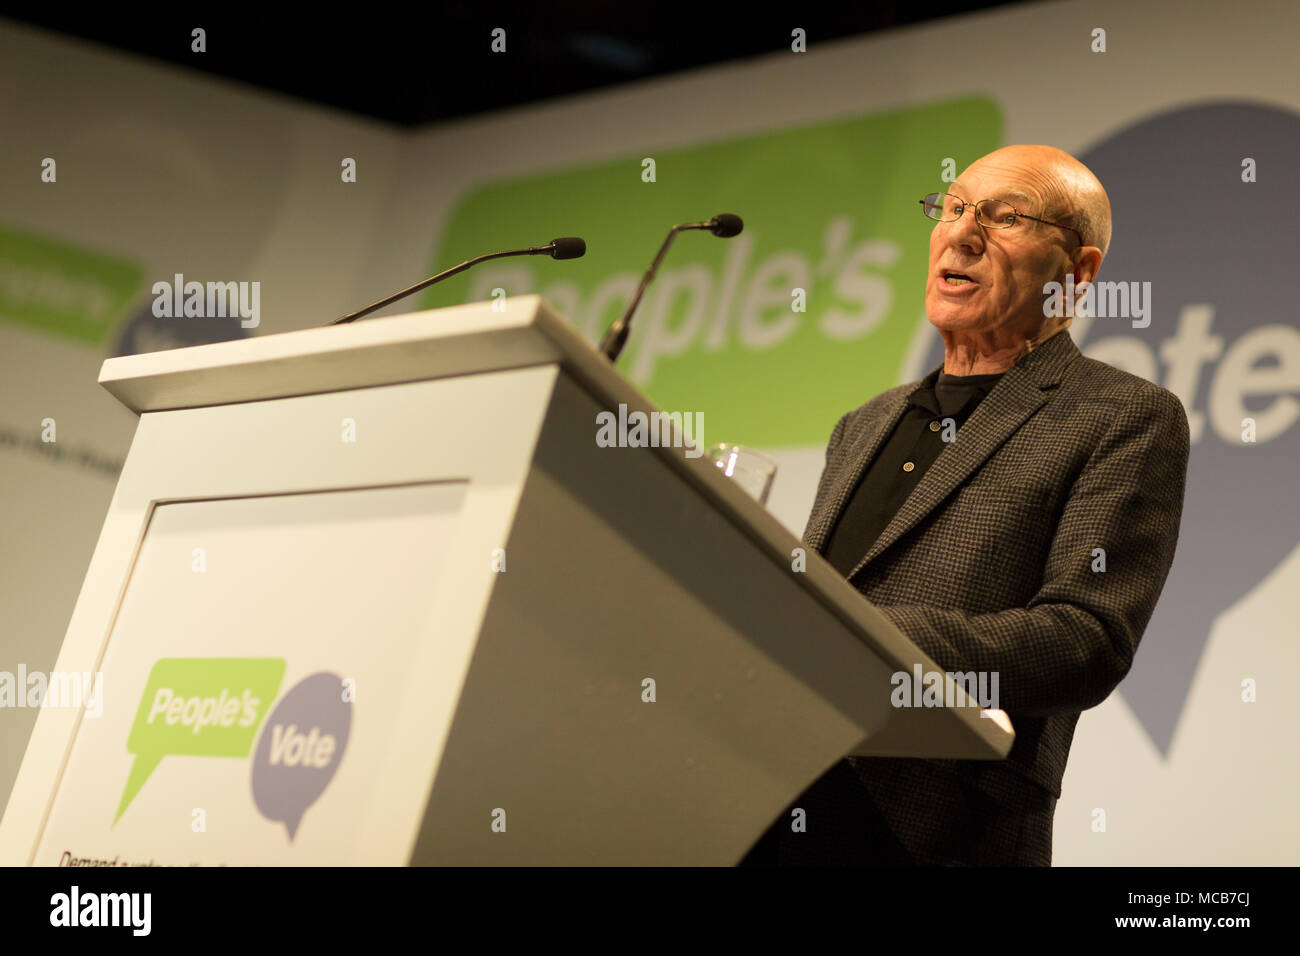 London, UK. 15th April, 2018. Sir Patrick Stewart launching the new People's Vote campaign calling for a public vote on the final Brexit deal before Britain leaves the EU, Camden, north London Credit: Radek Bayek/Alamy Live News - Stock Image